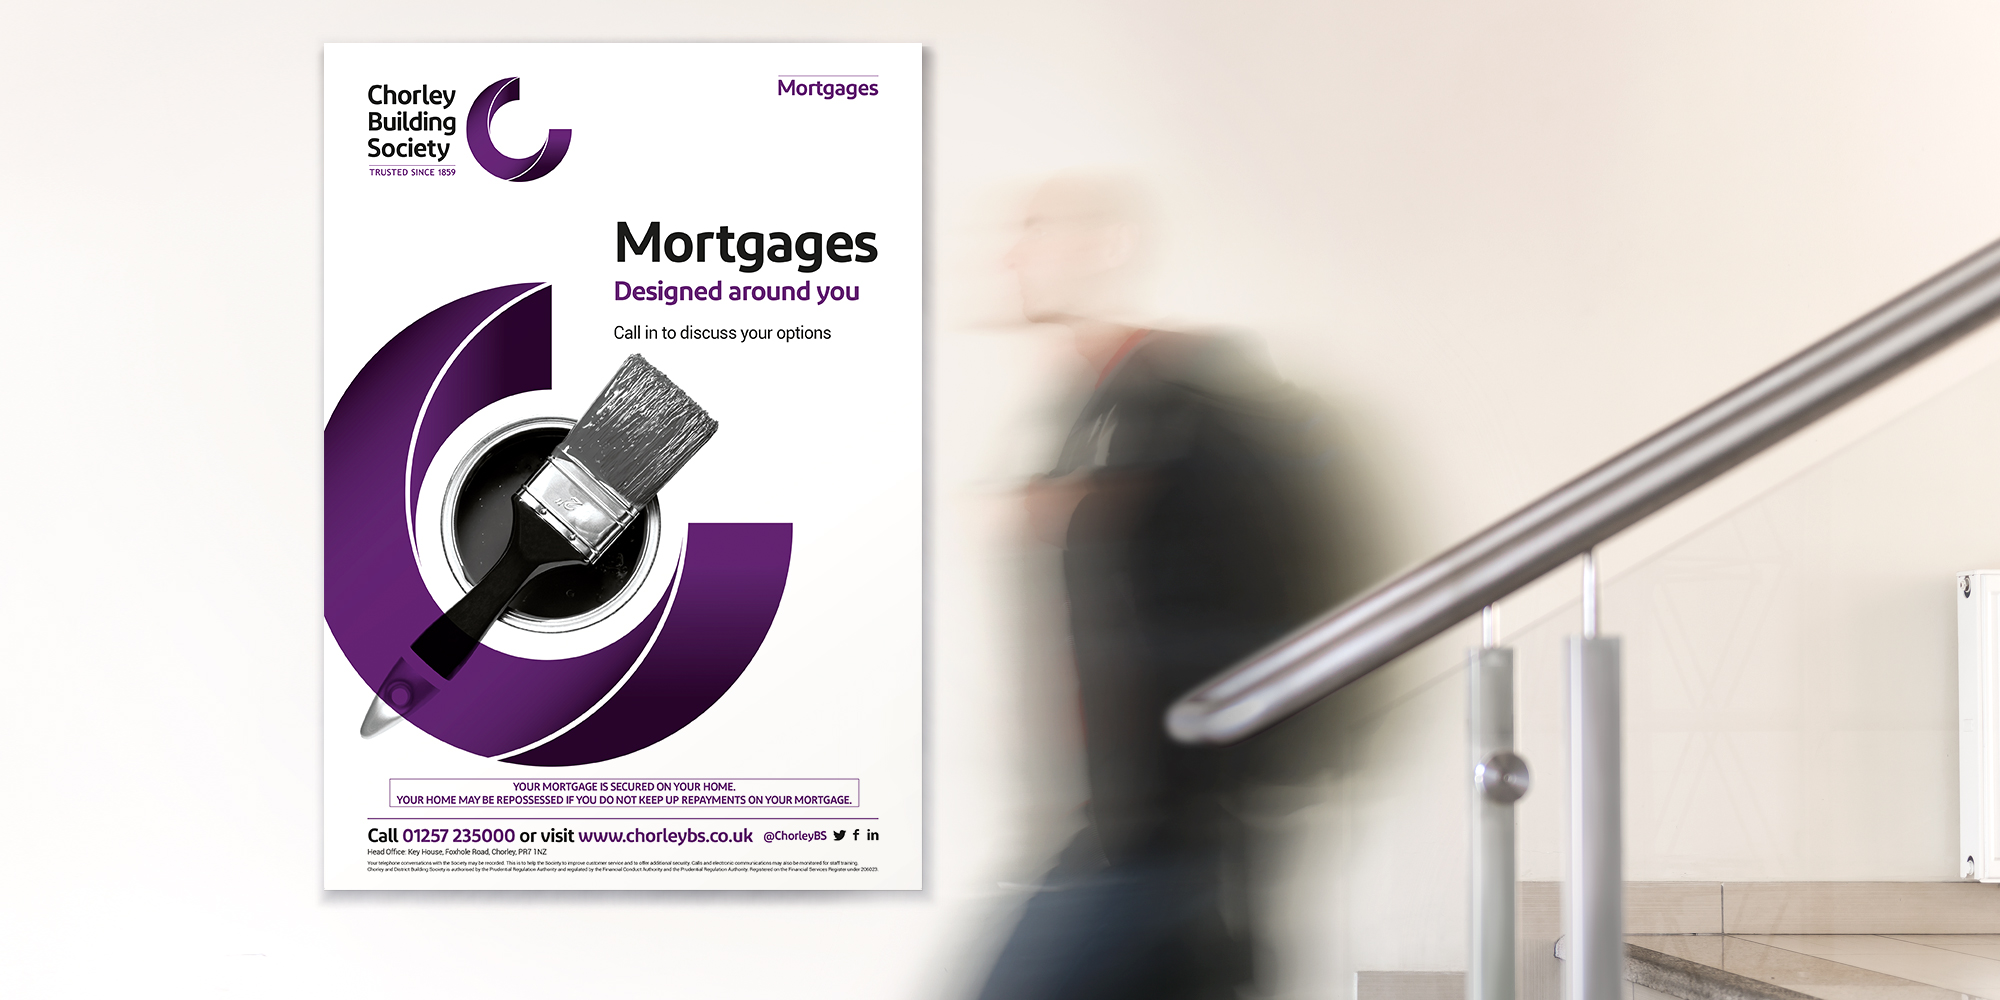 CBS Mortgages